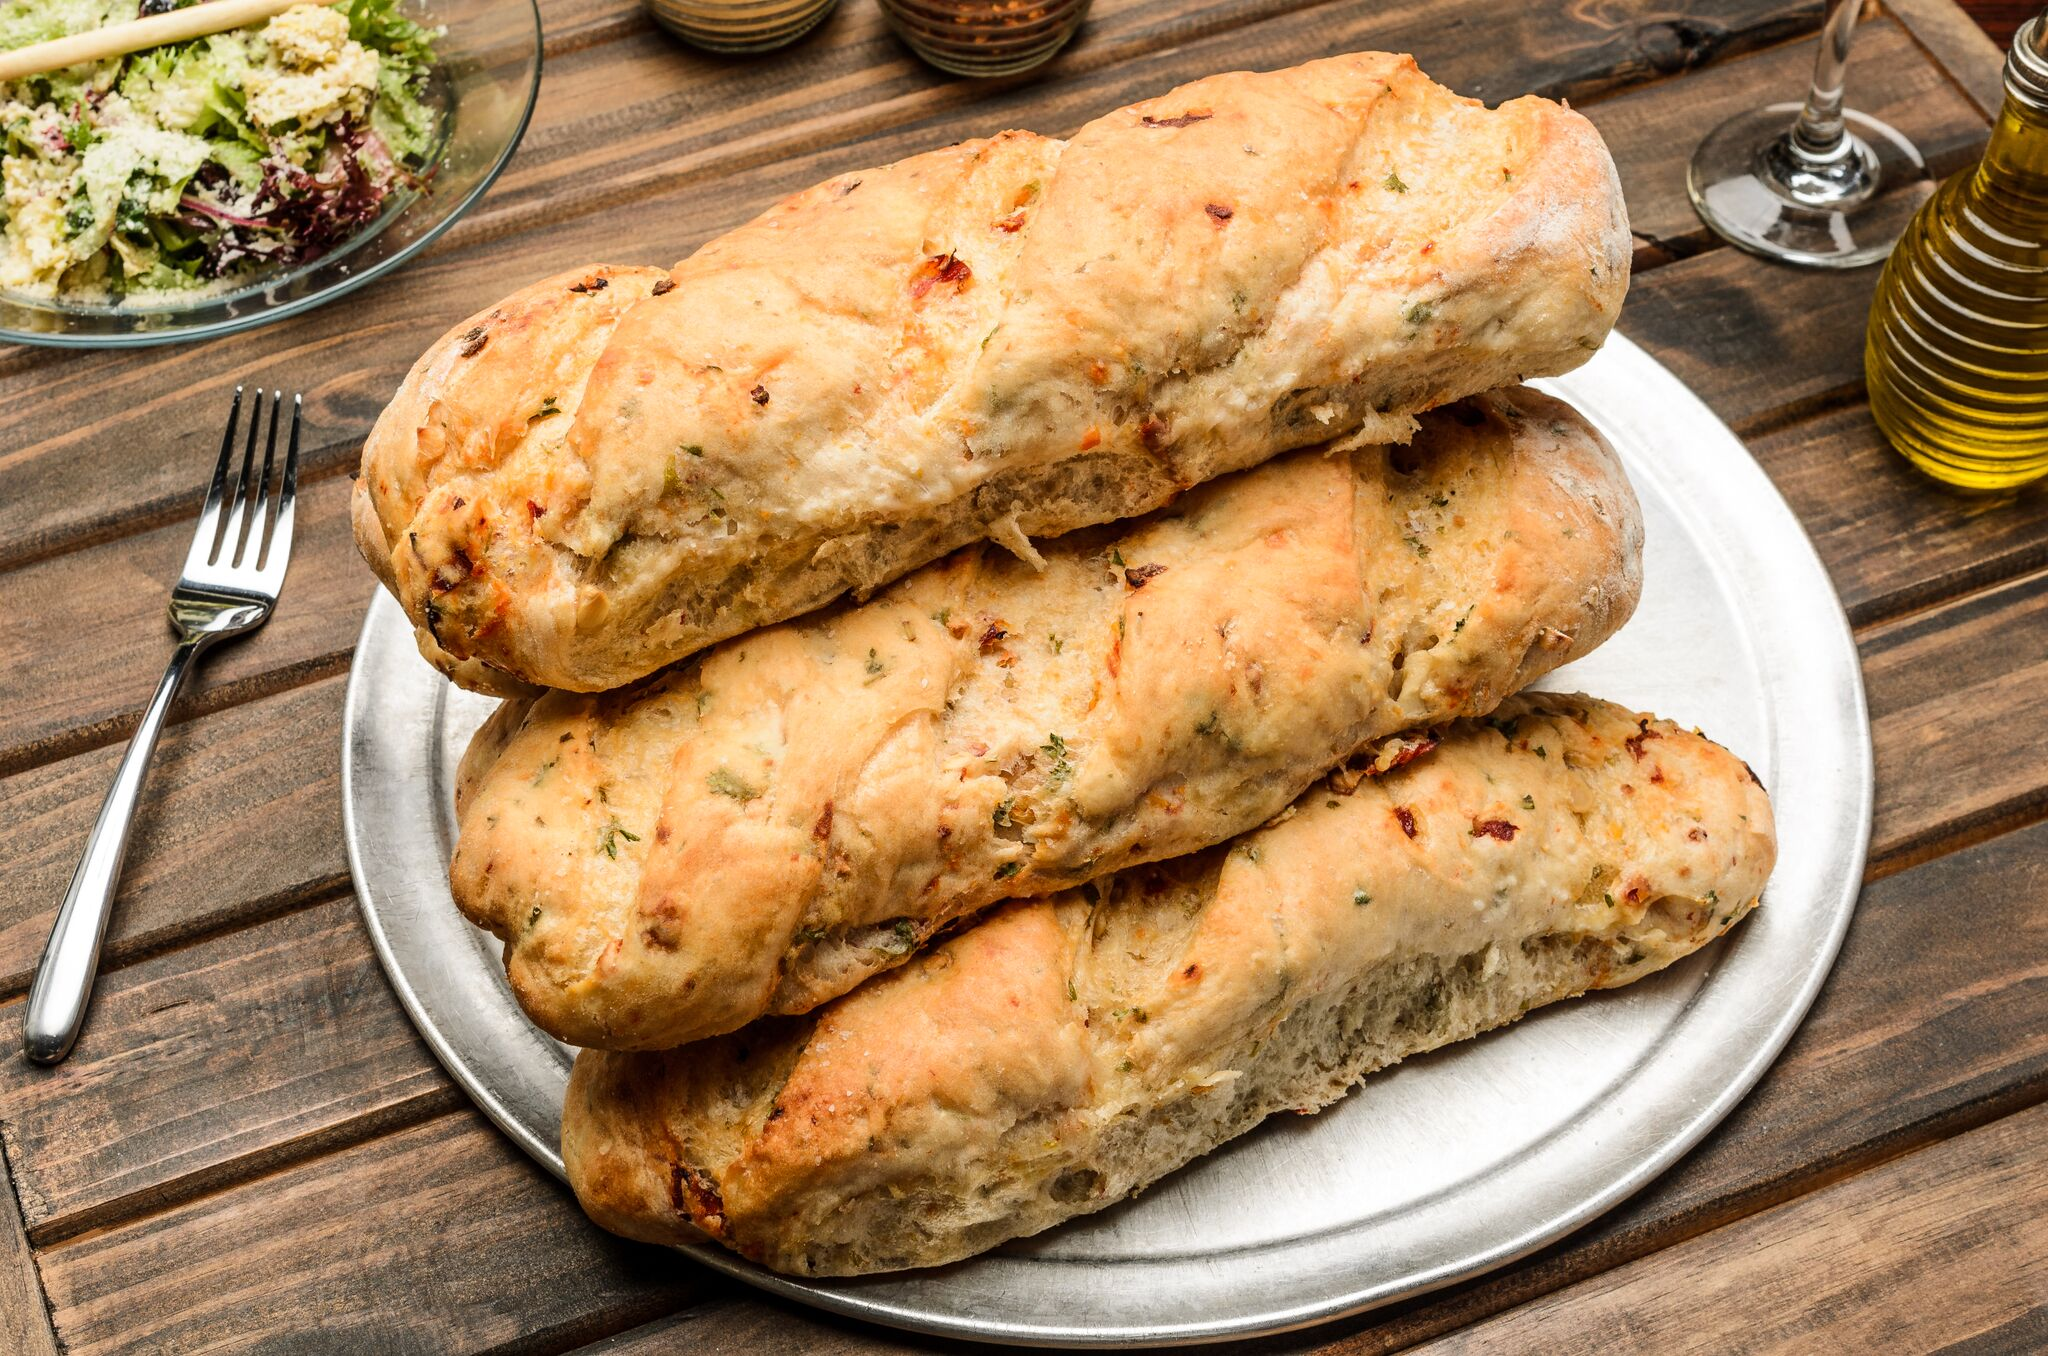 tuscan oven bread